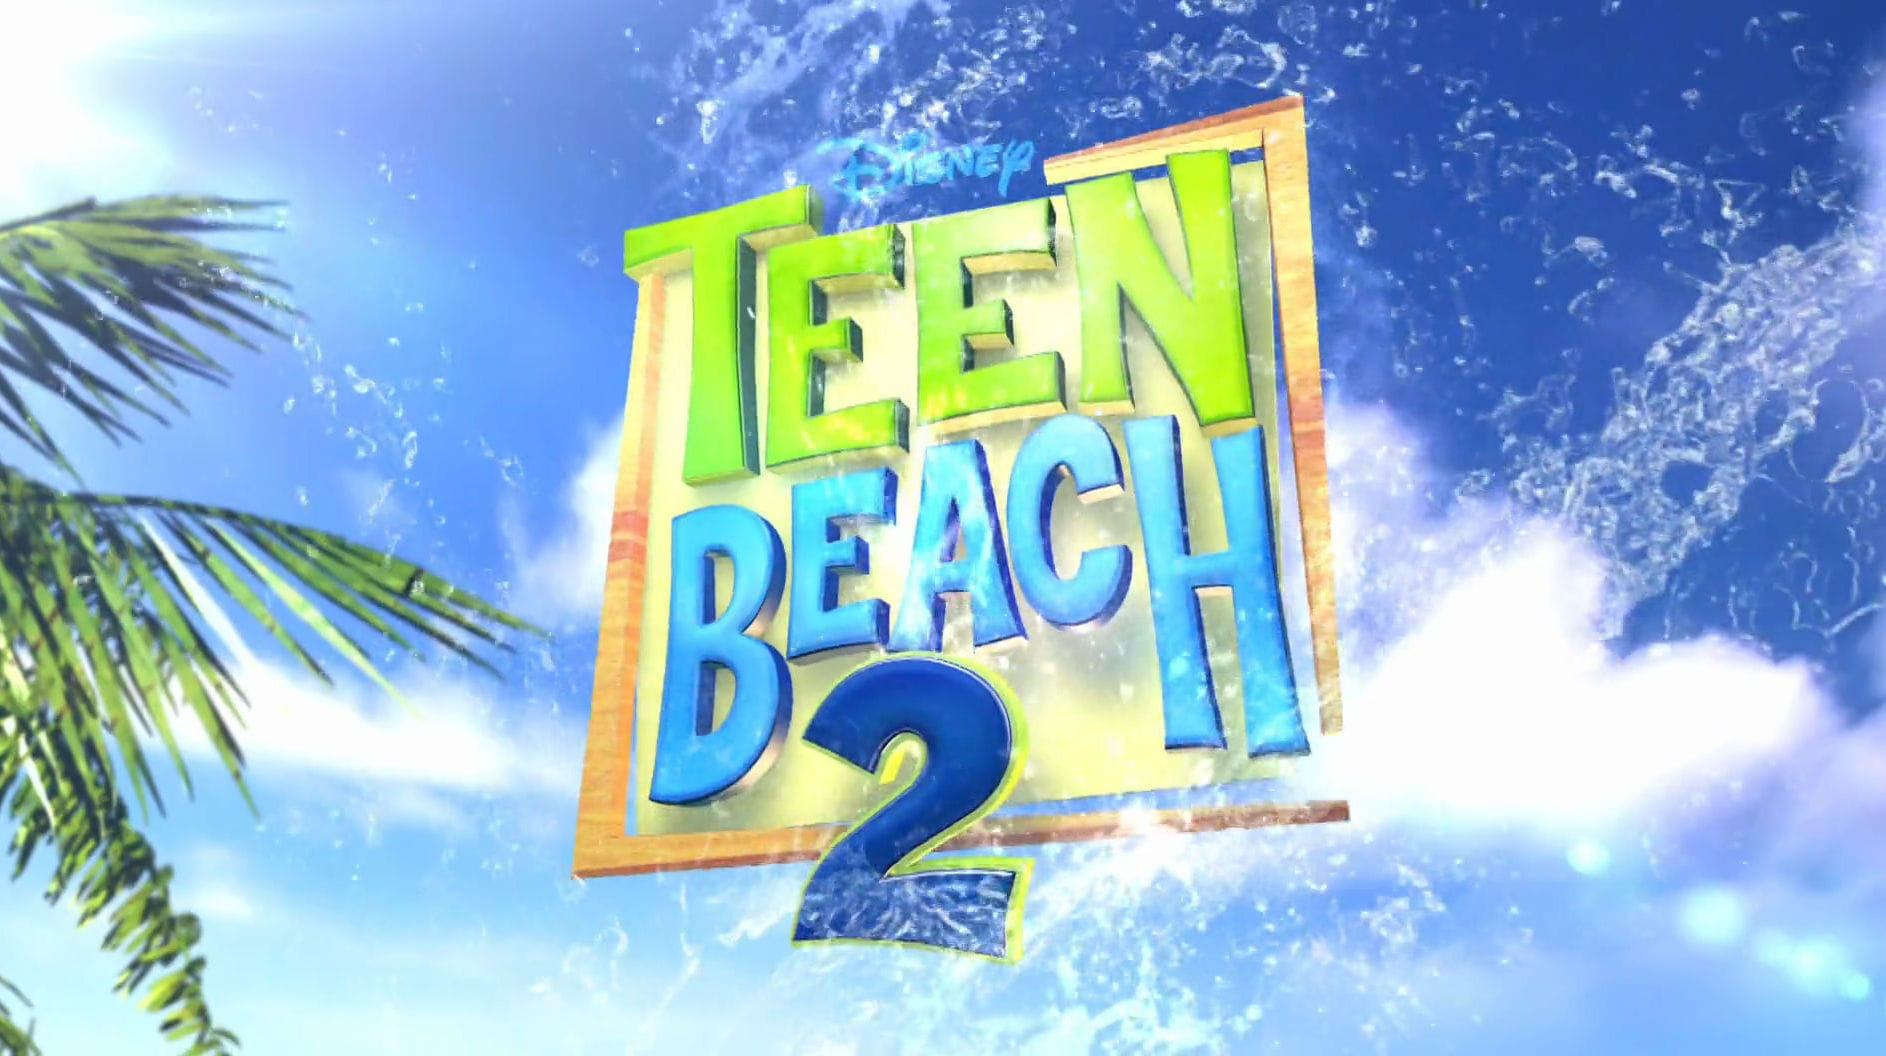 Teen Beach 2 | Fun Burst: Pole Slide | Disney Channel Official